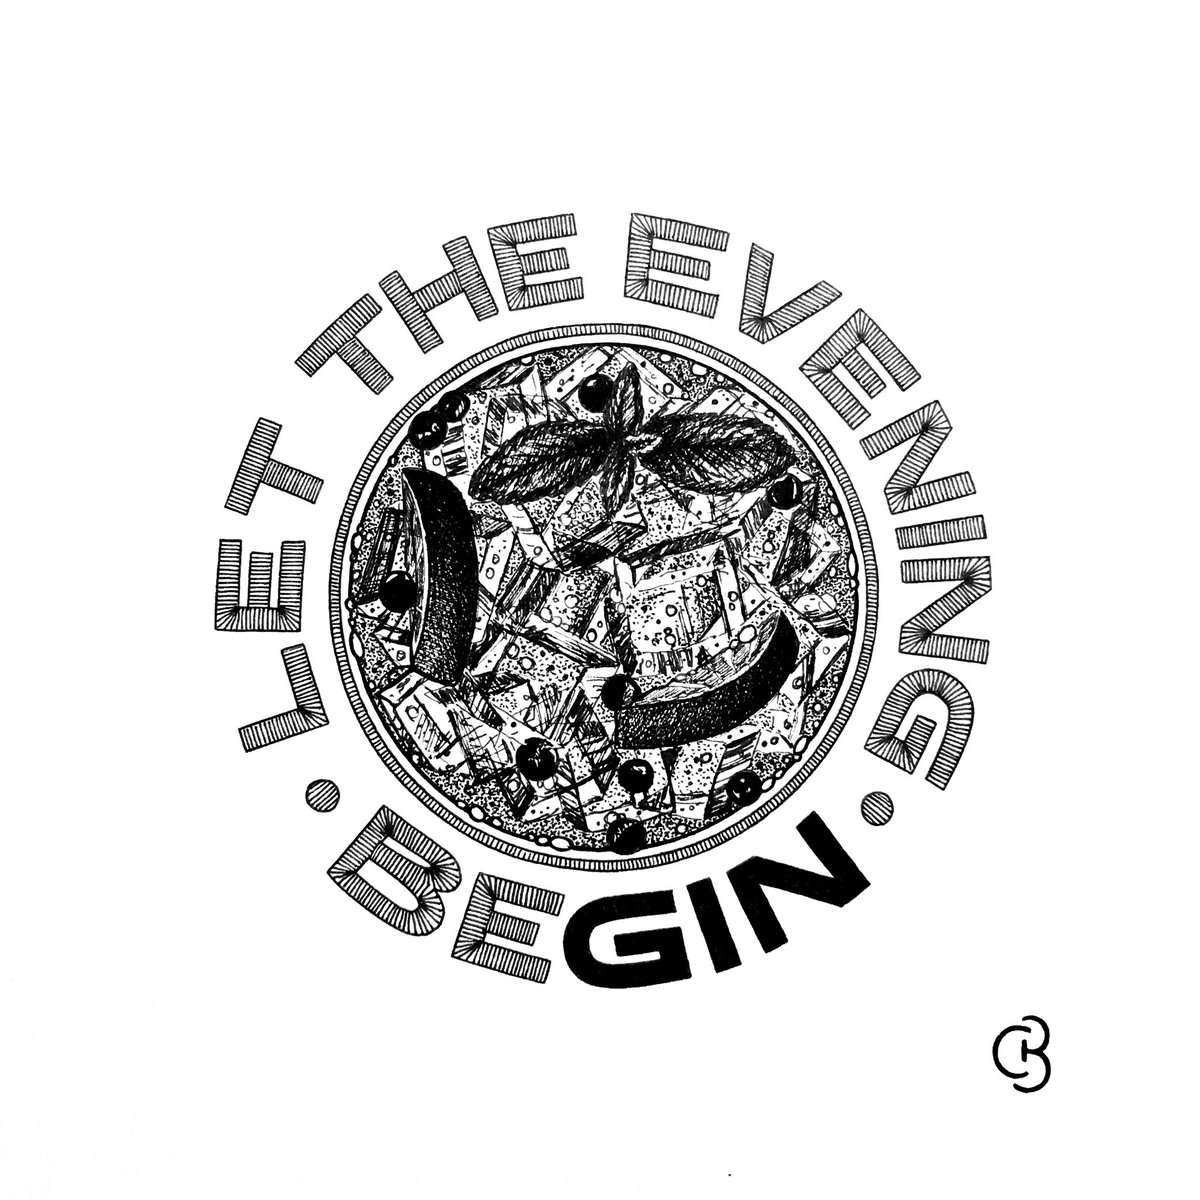 3 weeks in, so thought it was time for a GIN - Day 21's theme from Tanya 🍸 let the evening beGIN...  #gin #quote #ginlovers #ginandtonic #Inktober #inktober2020 #penandink #handdrawn #drawing #illustration #fineart #giftideas #art #design #localartist #highstridesoc #birmingham https://t.co/zCYIVOsSRm